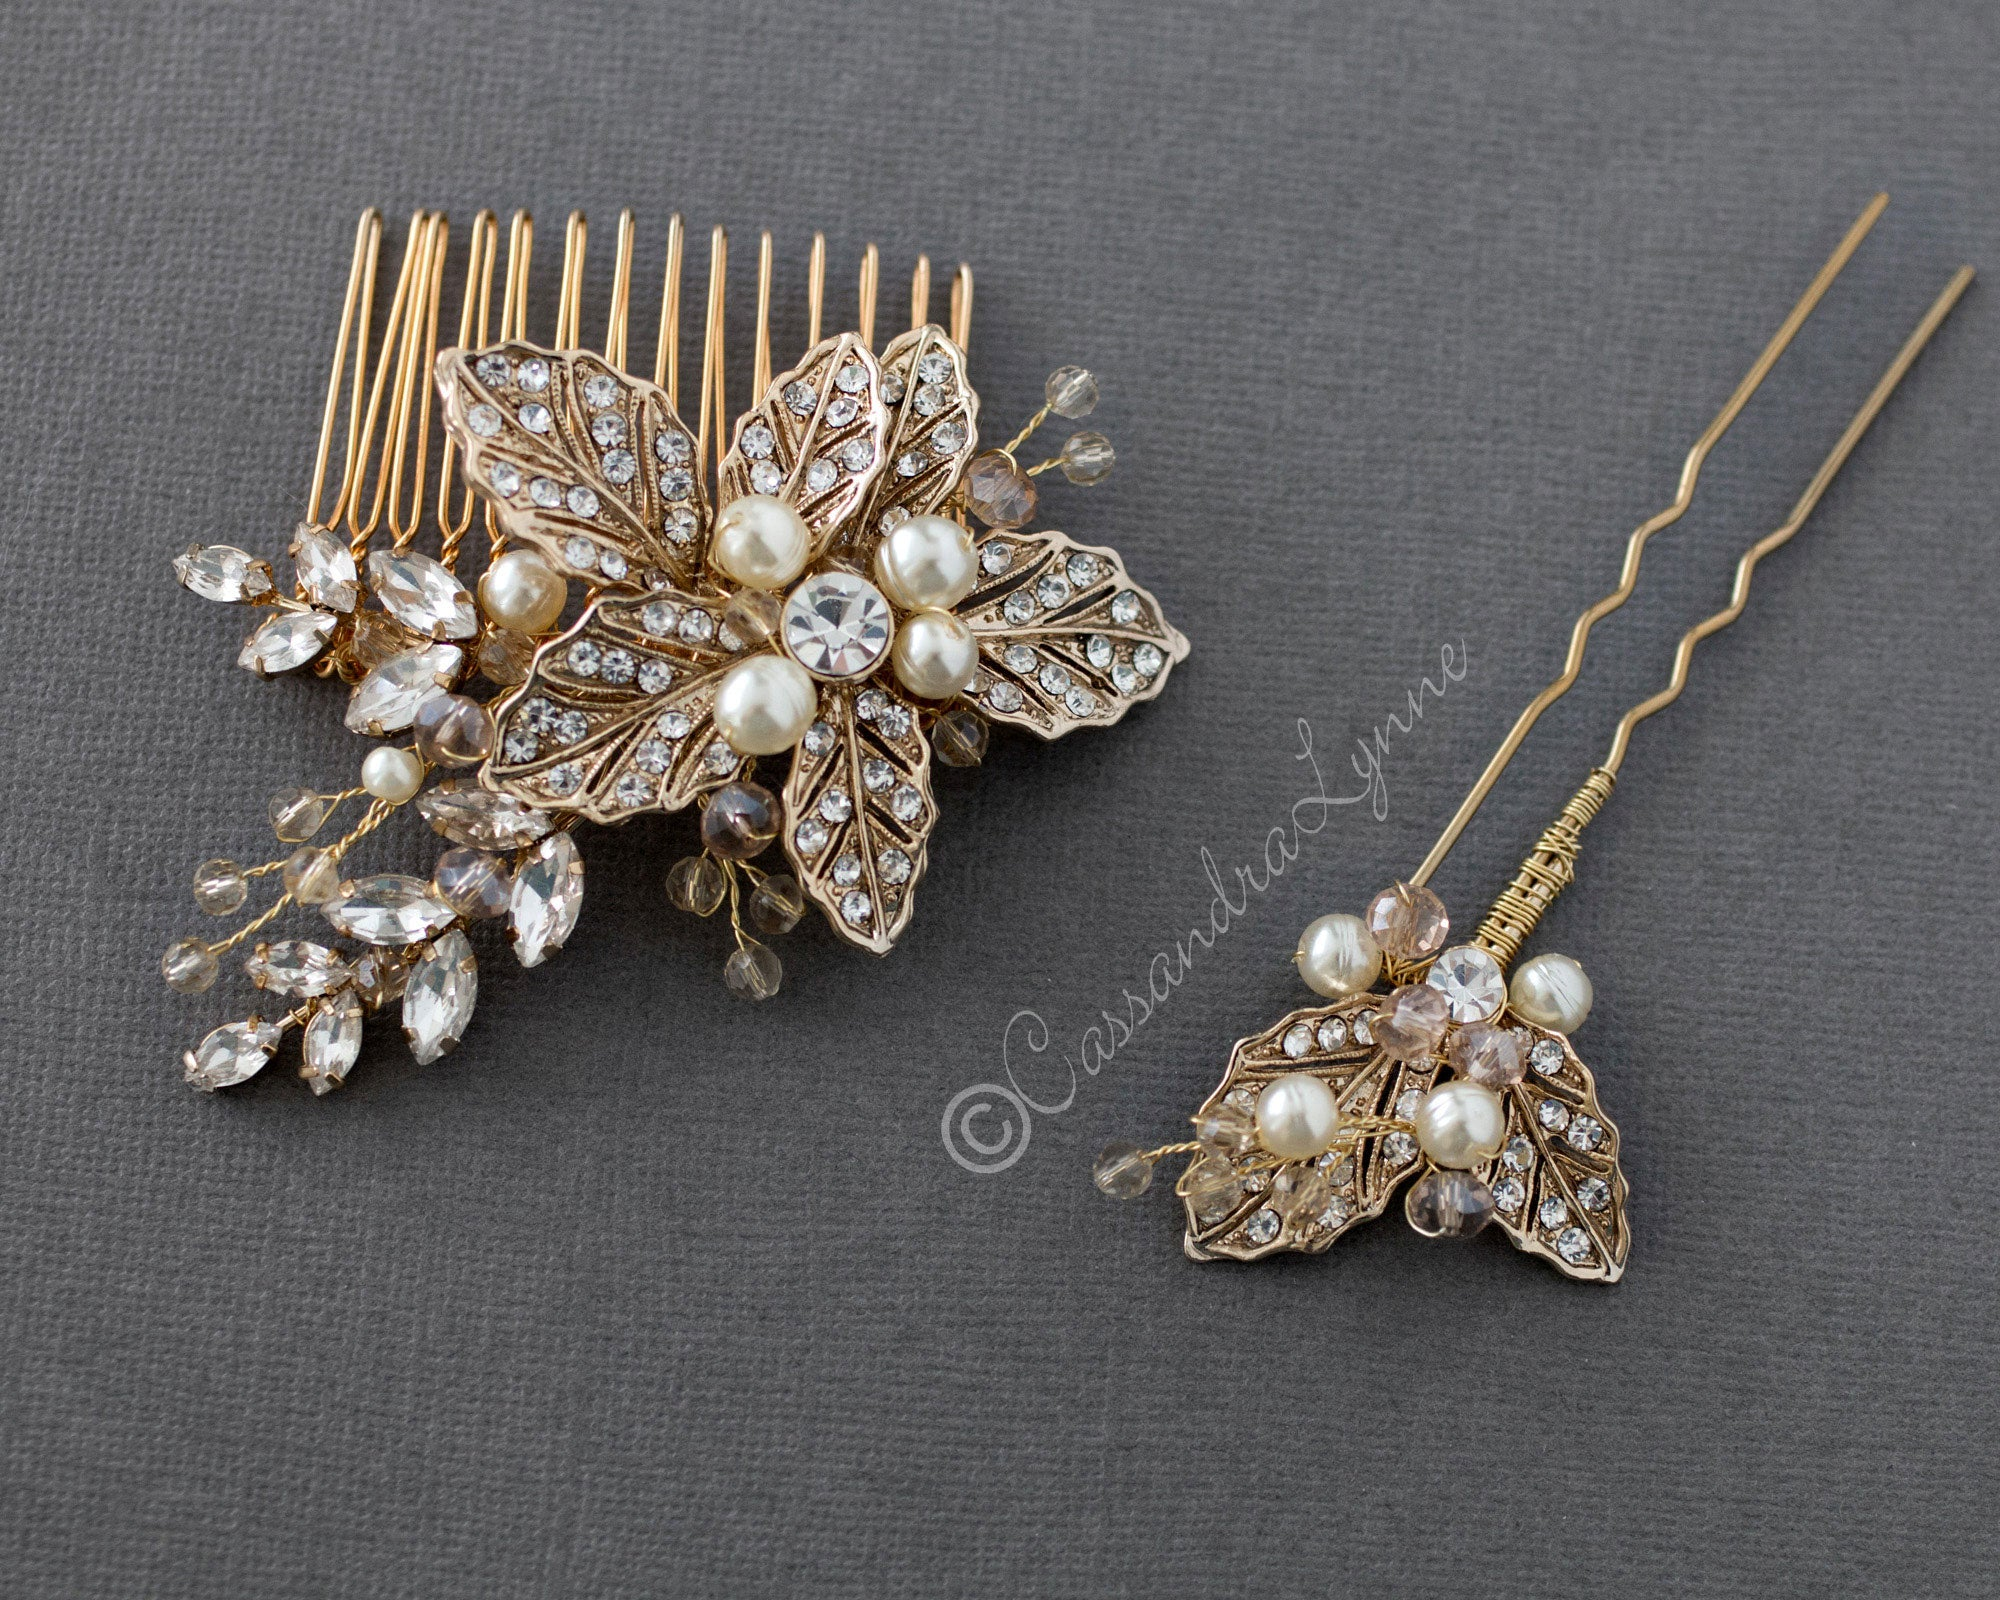 Gold Comb and Clip Set of Pearls and Crystals OOAK